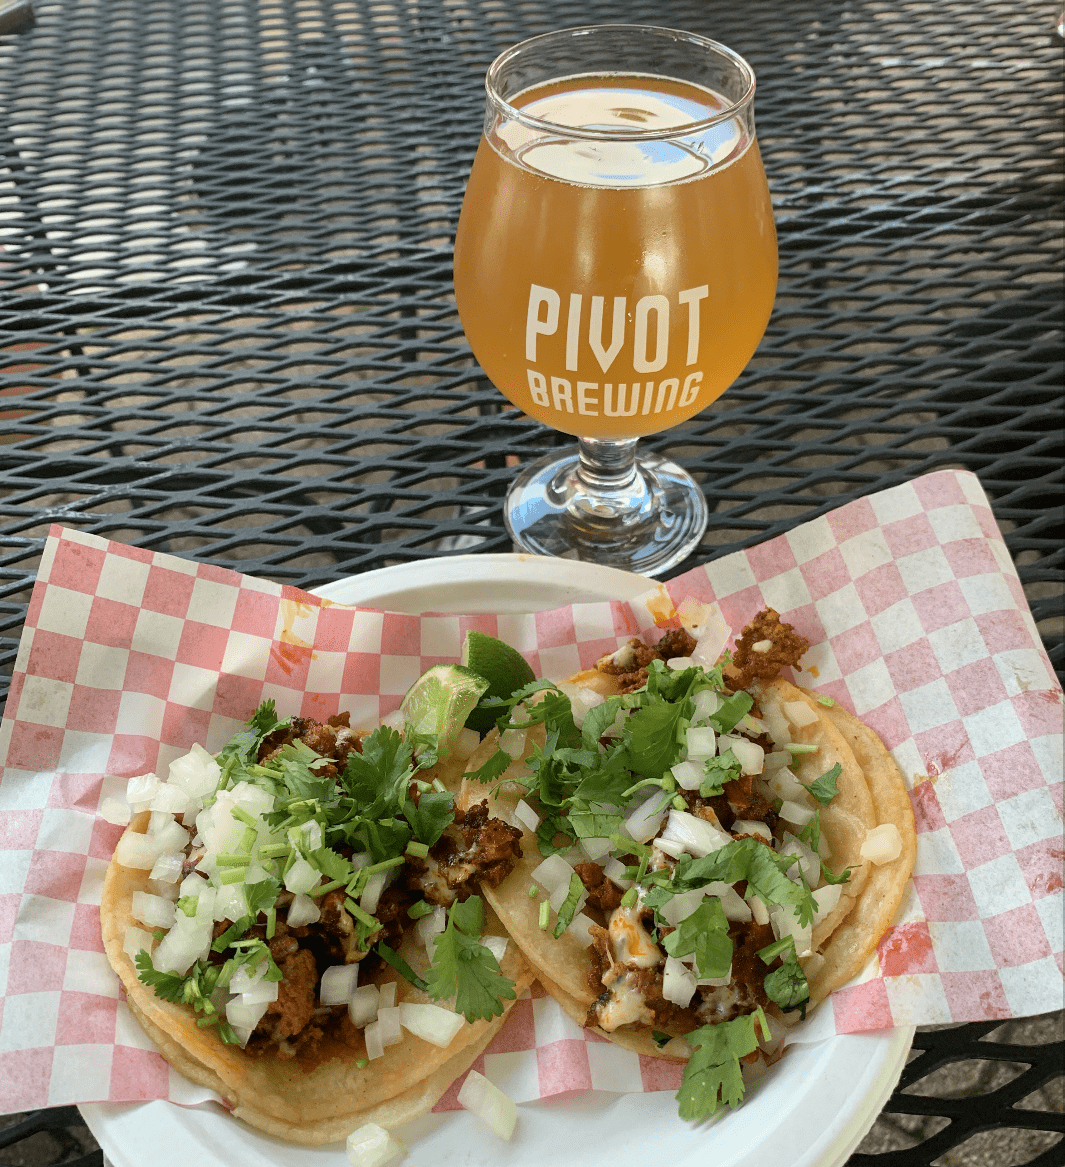 Nathans Taqueria taco with pivot brewing yellow cider